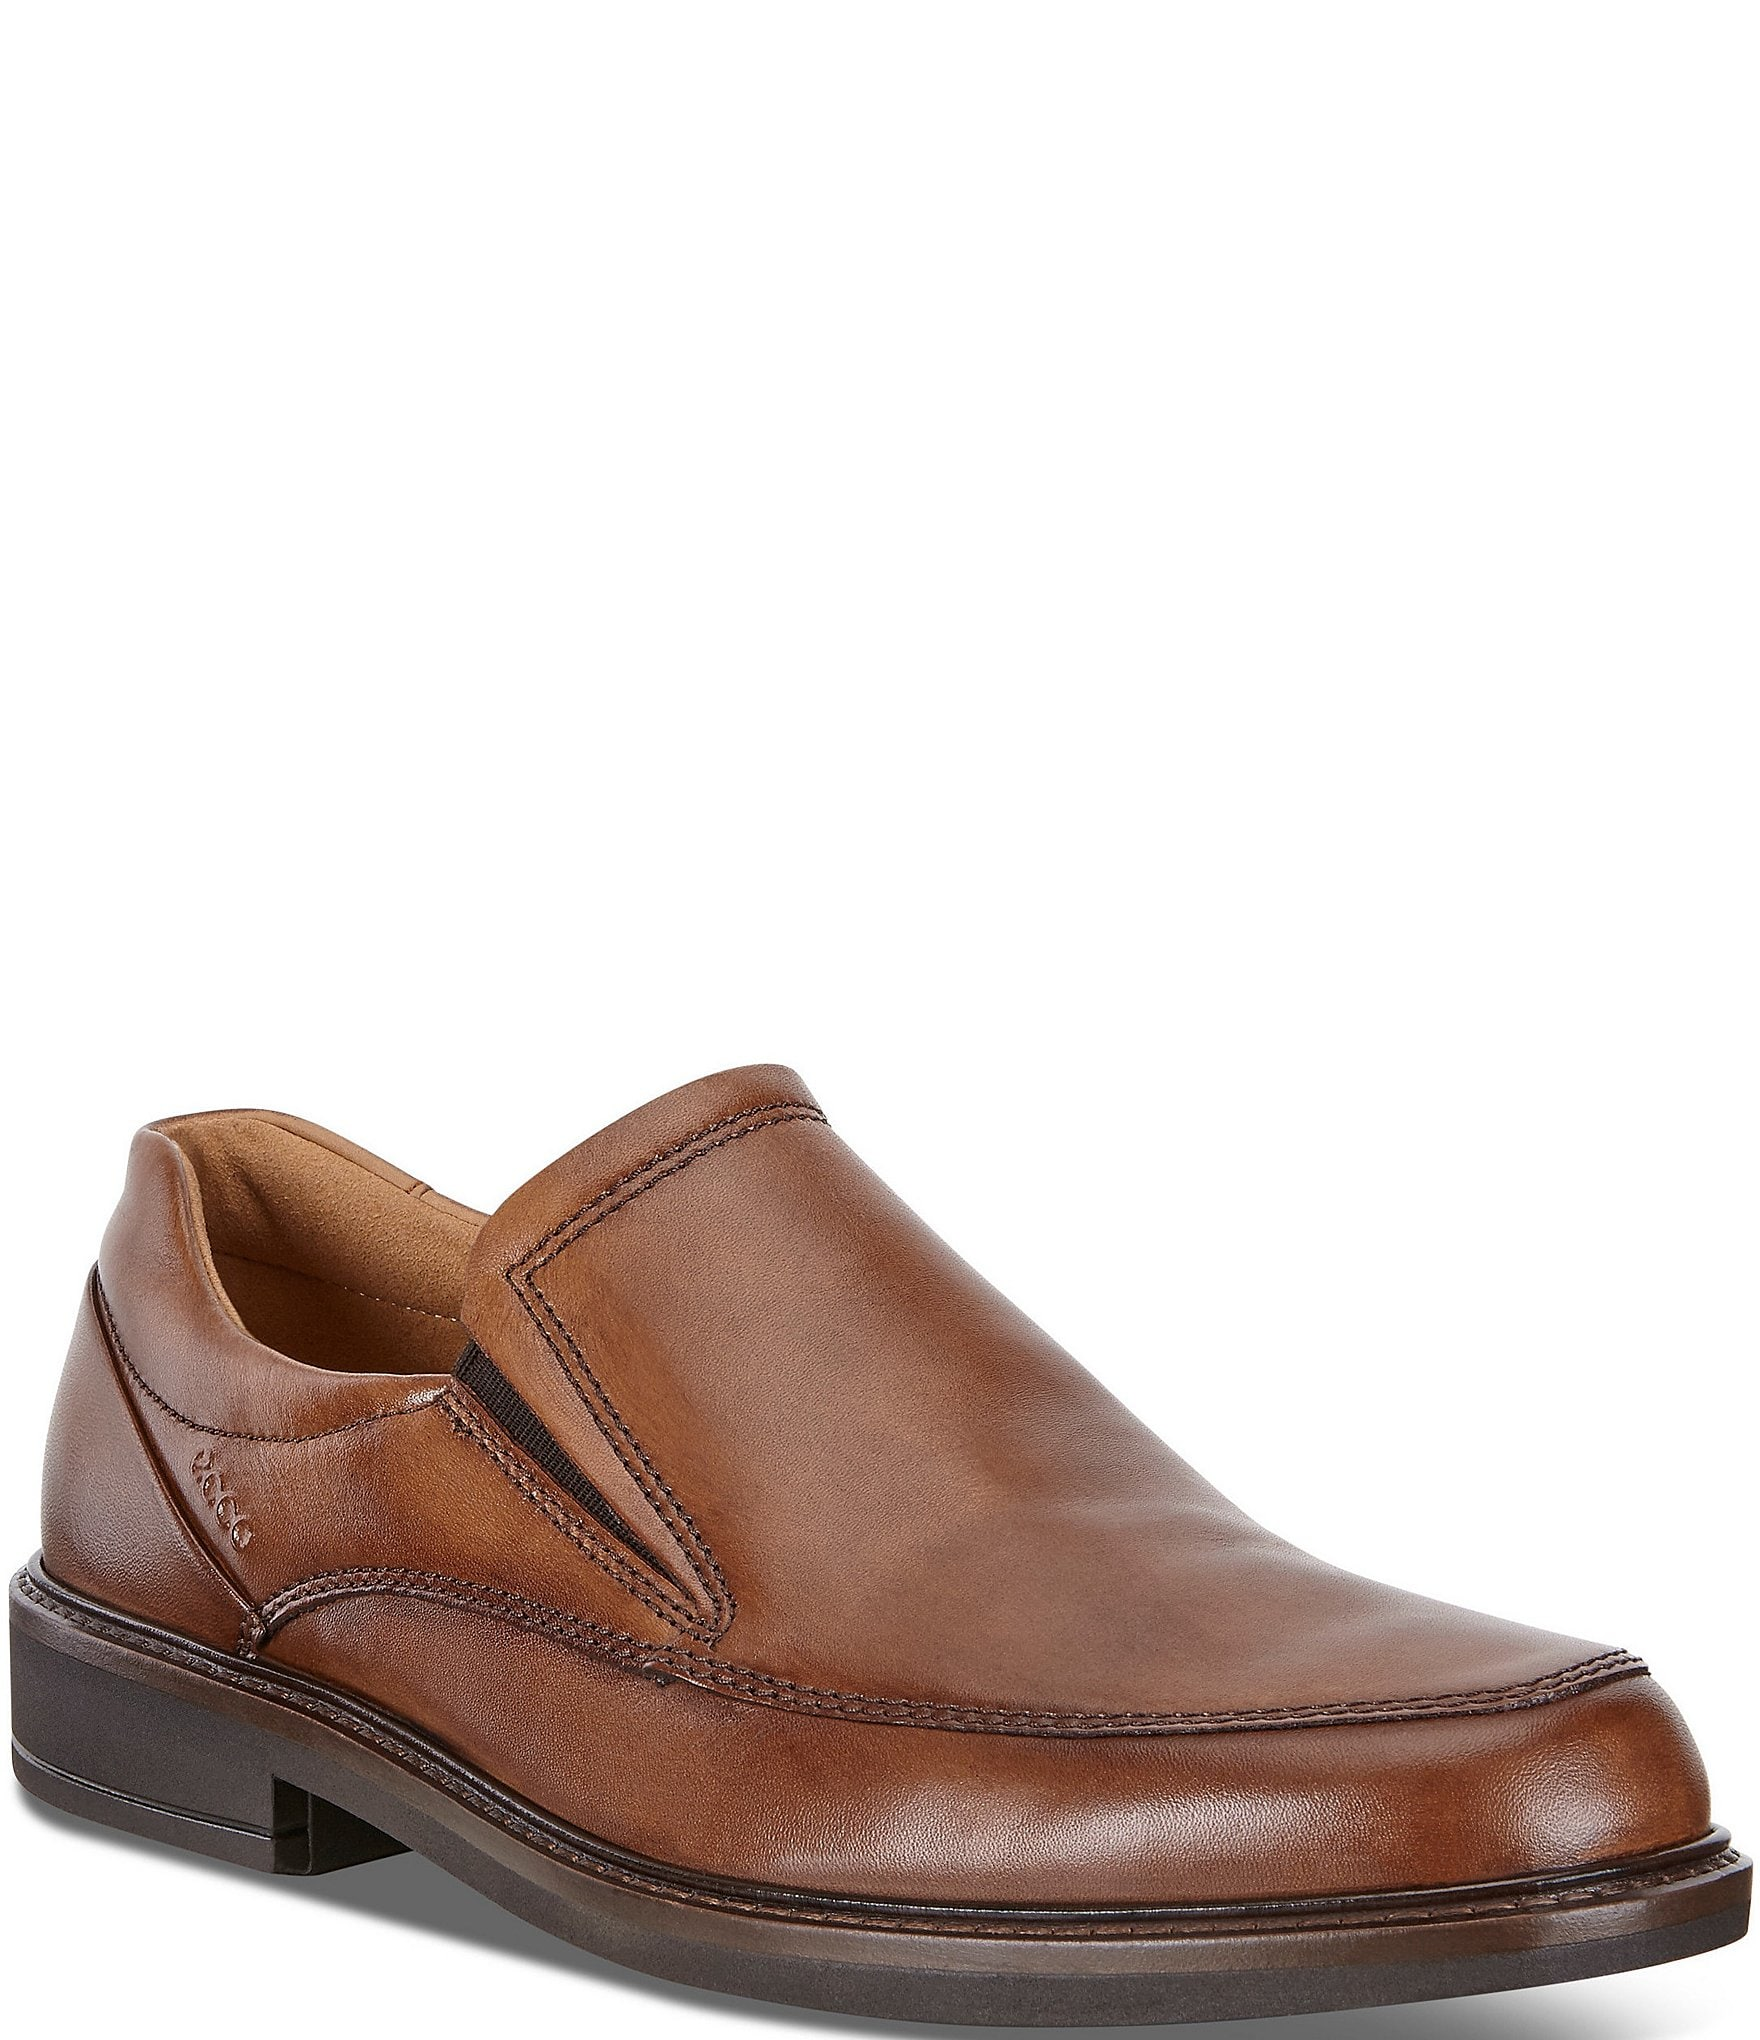 0702b62f00 ECCO Men's Holton Apron-Toe Slip-On Shoes | Dillard's